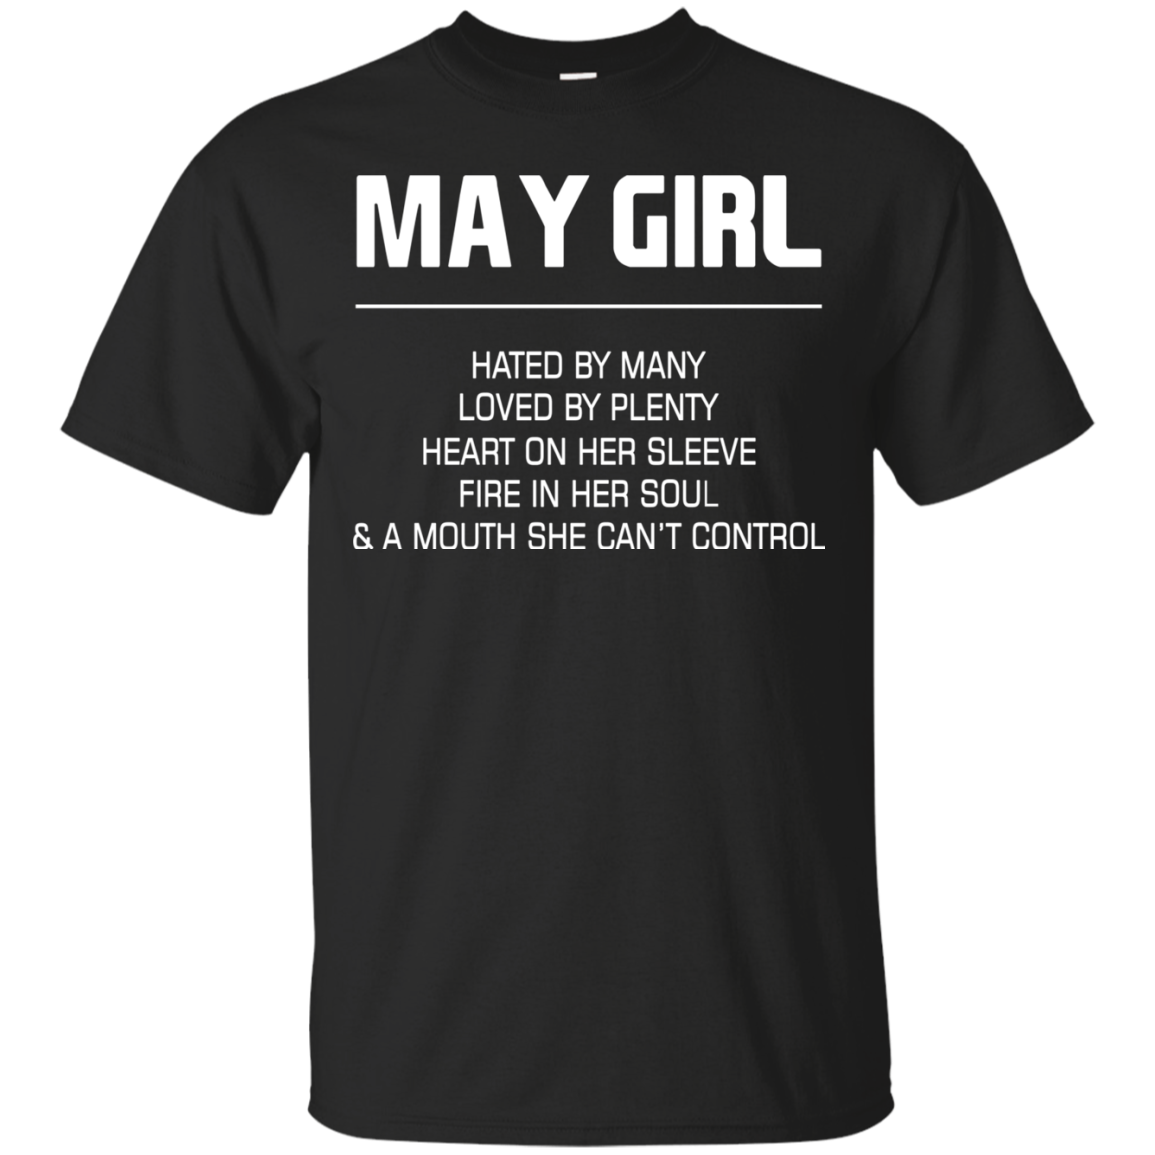 May Girl Hated By Many Loved By Plenty S S Shirts